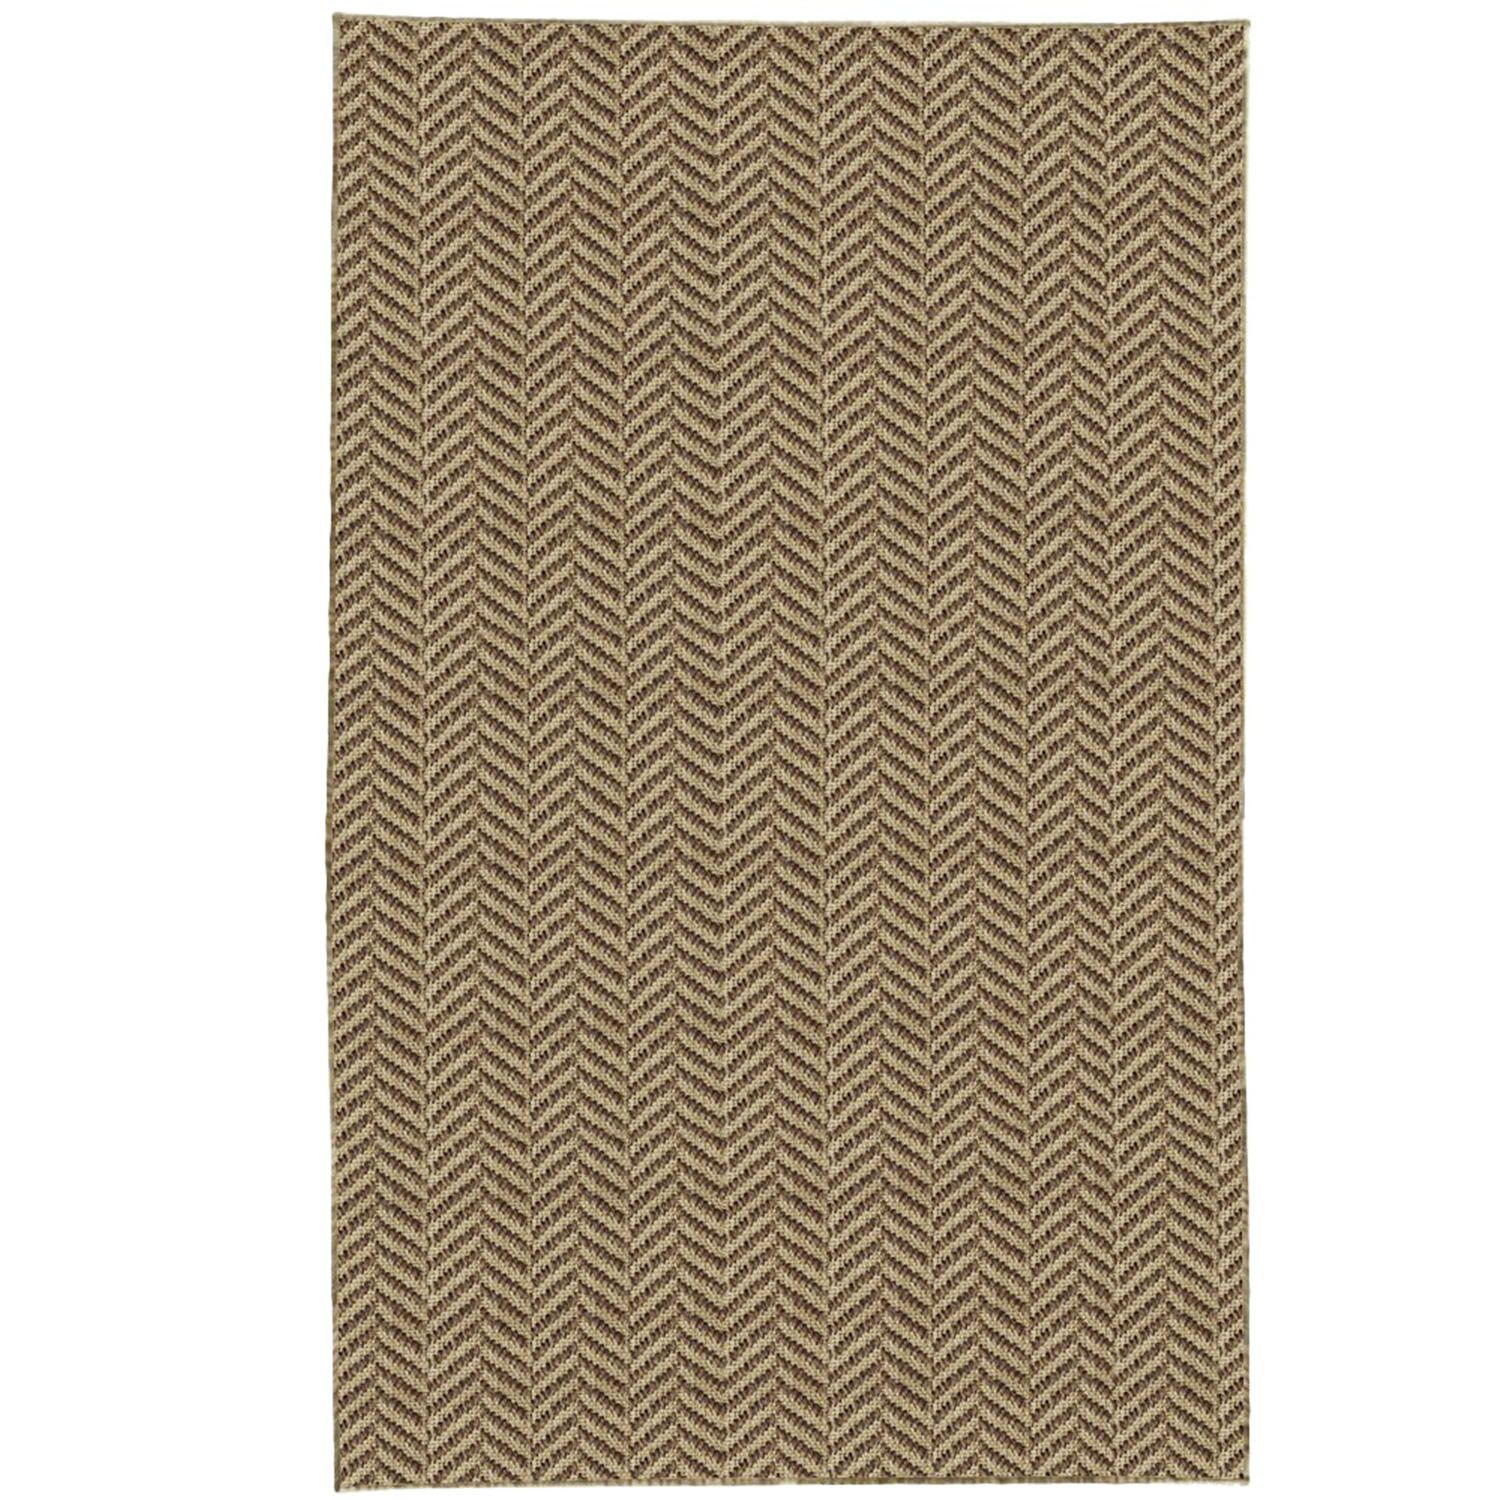 Paige Brown Area Rug Rug Size: Runner 2'6